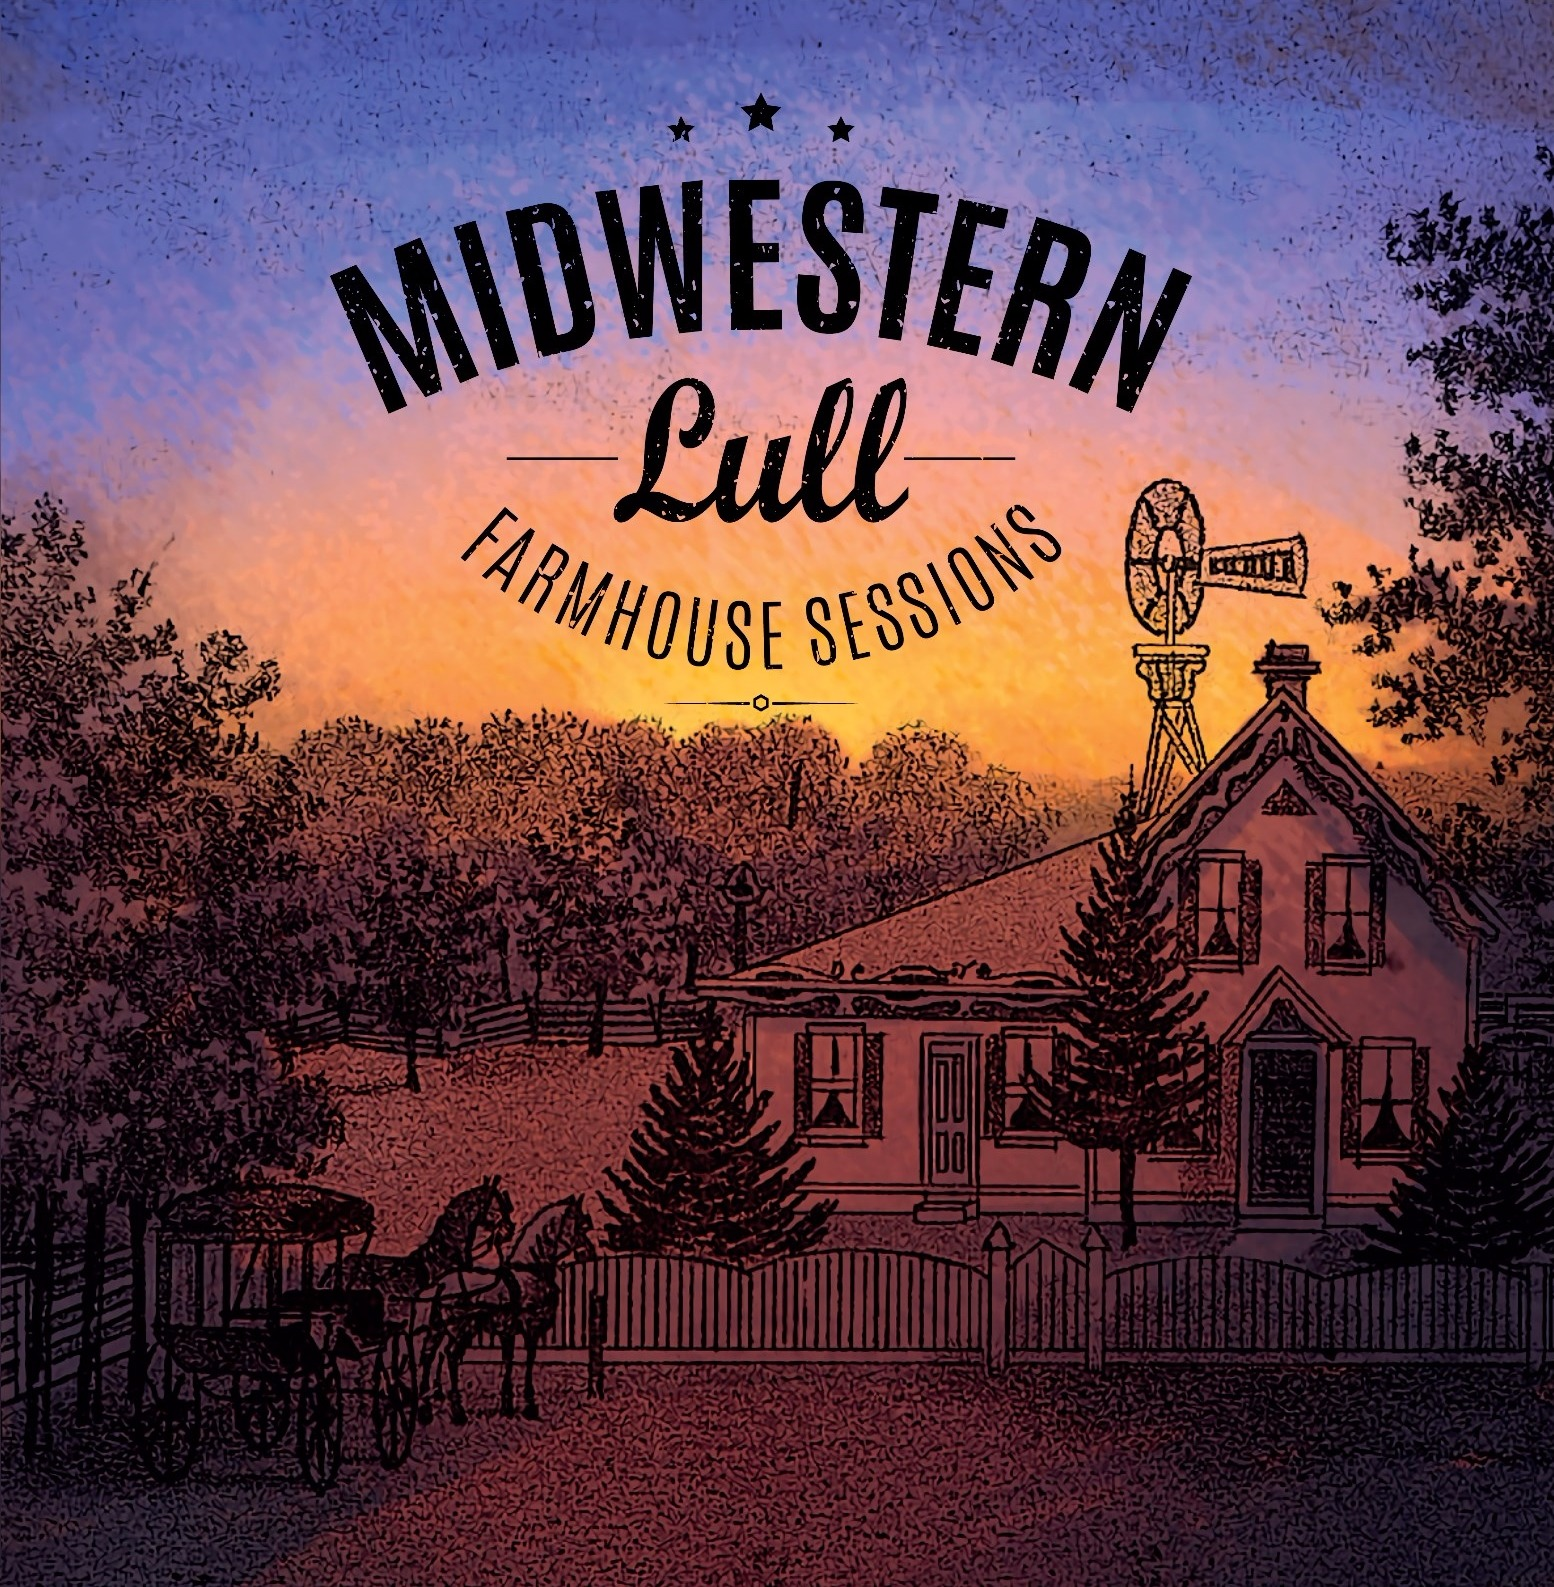 Midwestern Lull-Farmhouse Sessions-96 khz/24-bit Audiophile